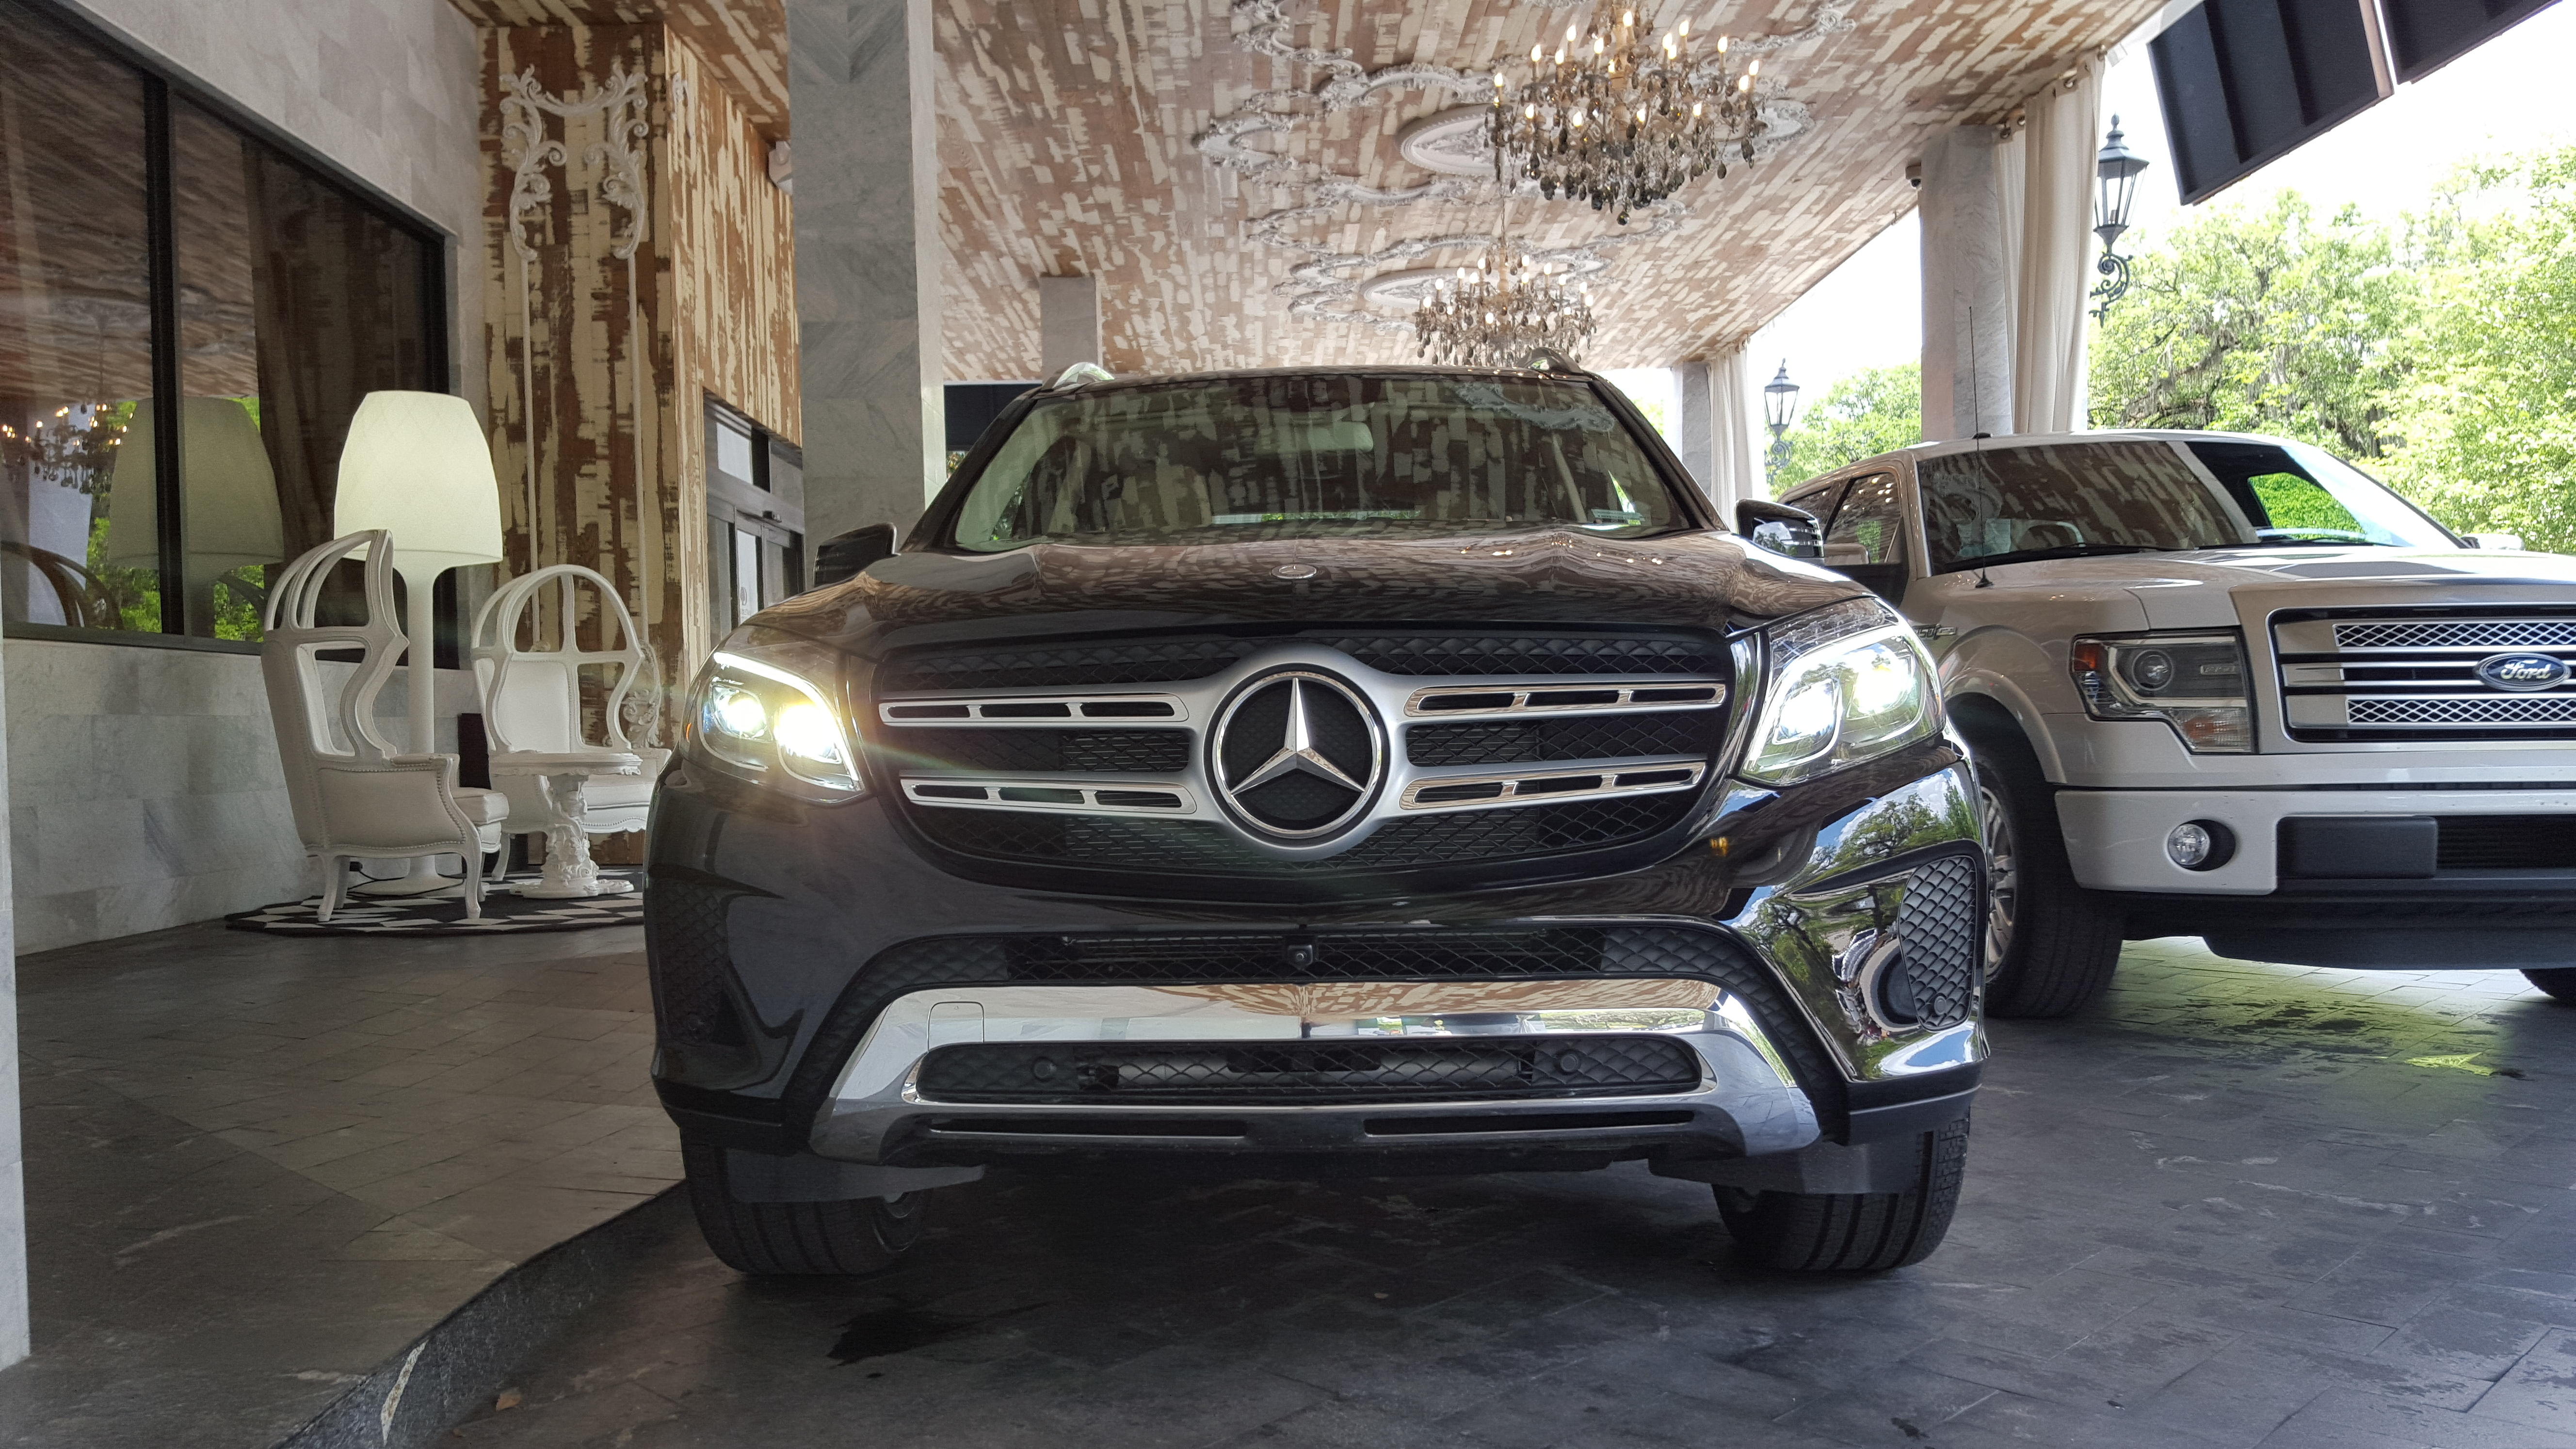 2017 mercedes benz gls450 naples fl 34108 for Mercedes benz for sale buffalo ny